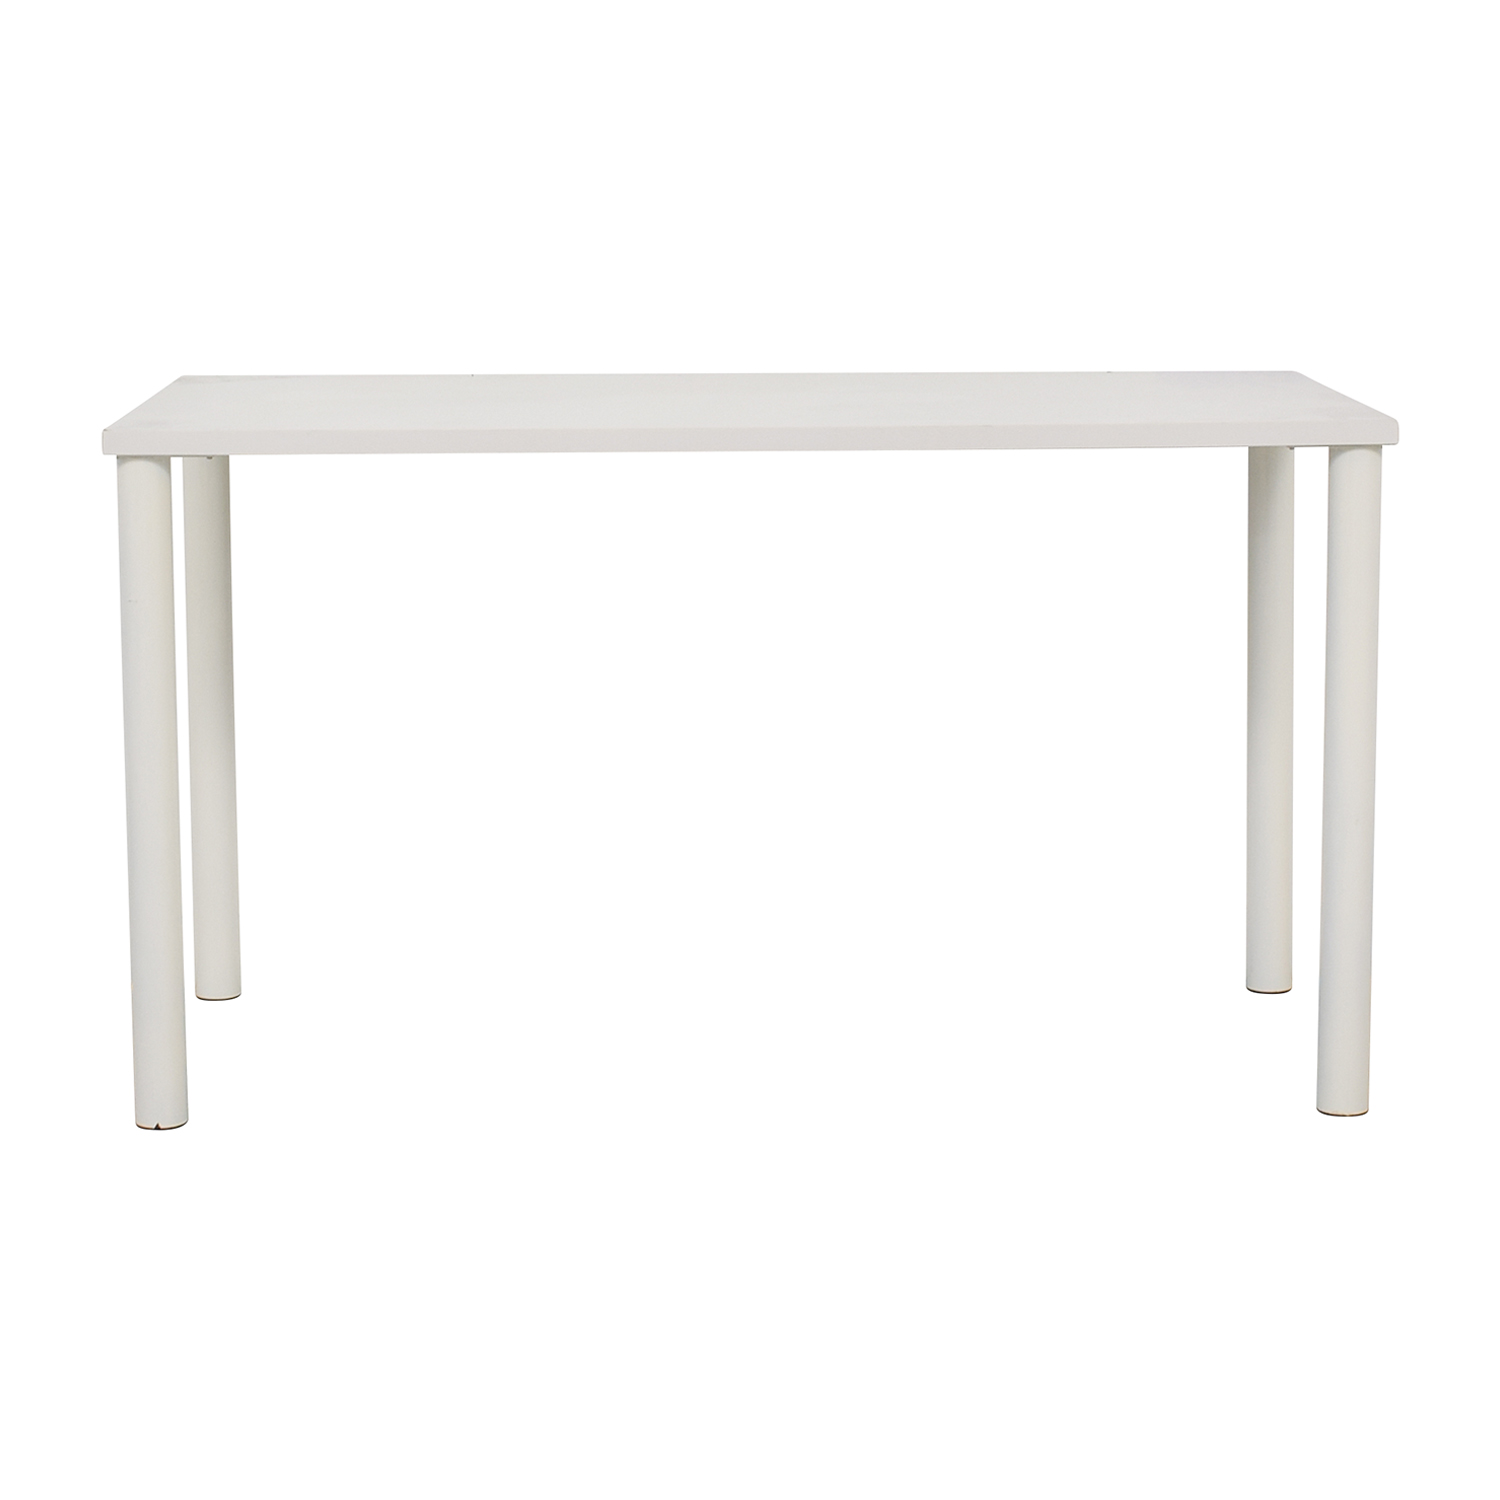 shop Container Store Container Store White Table online